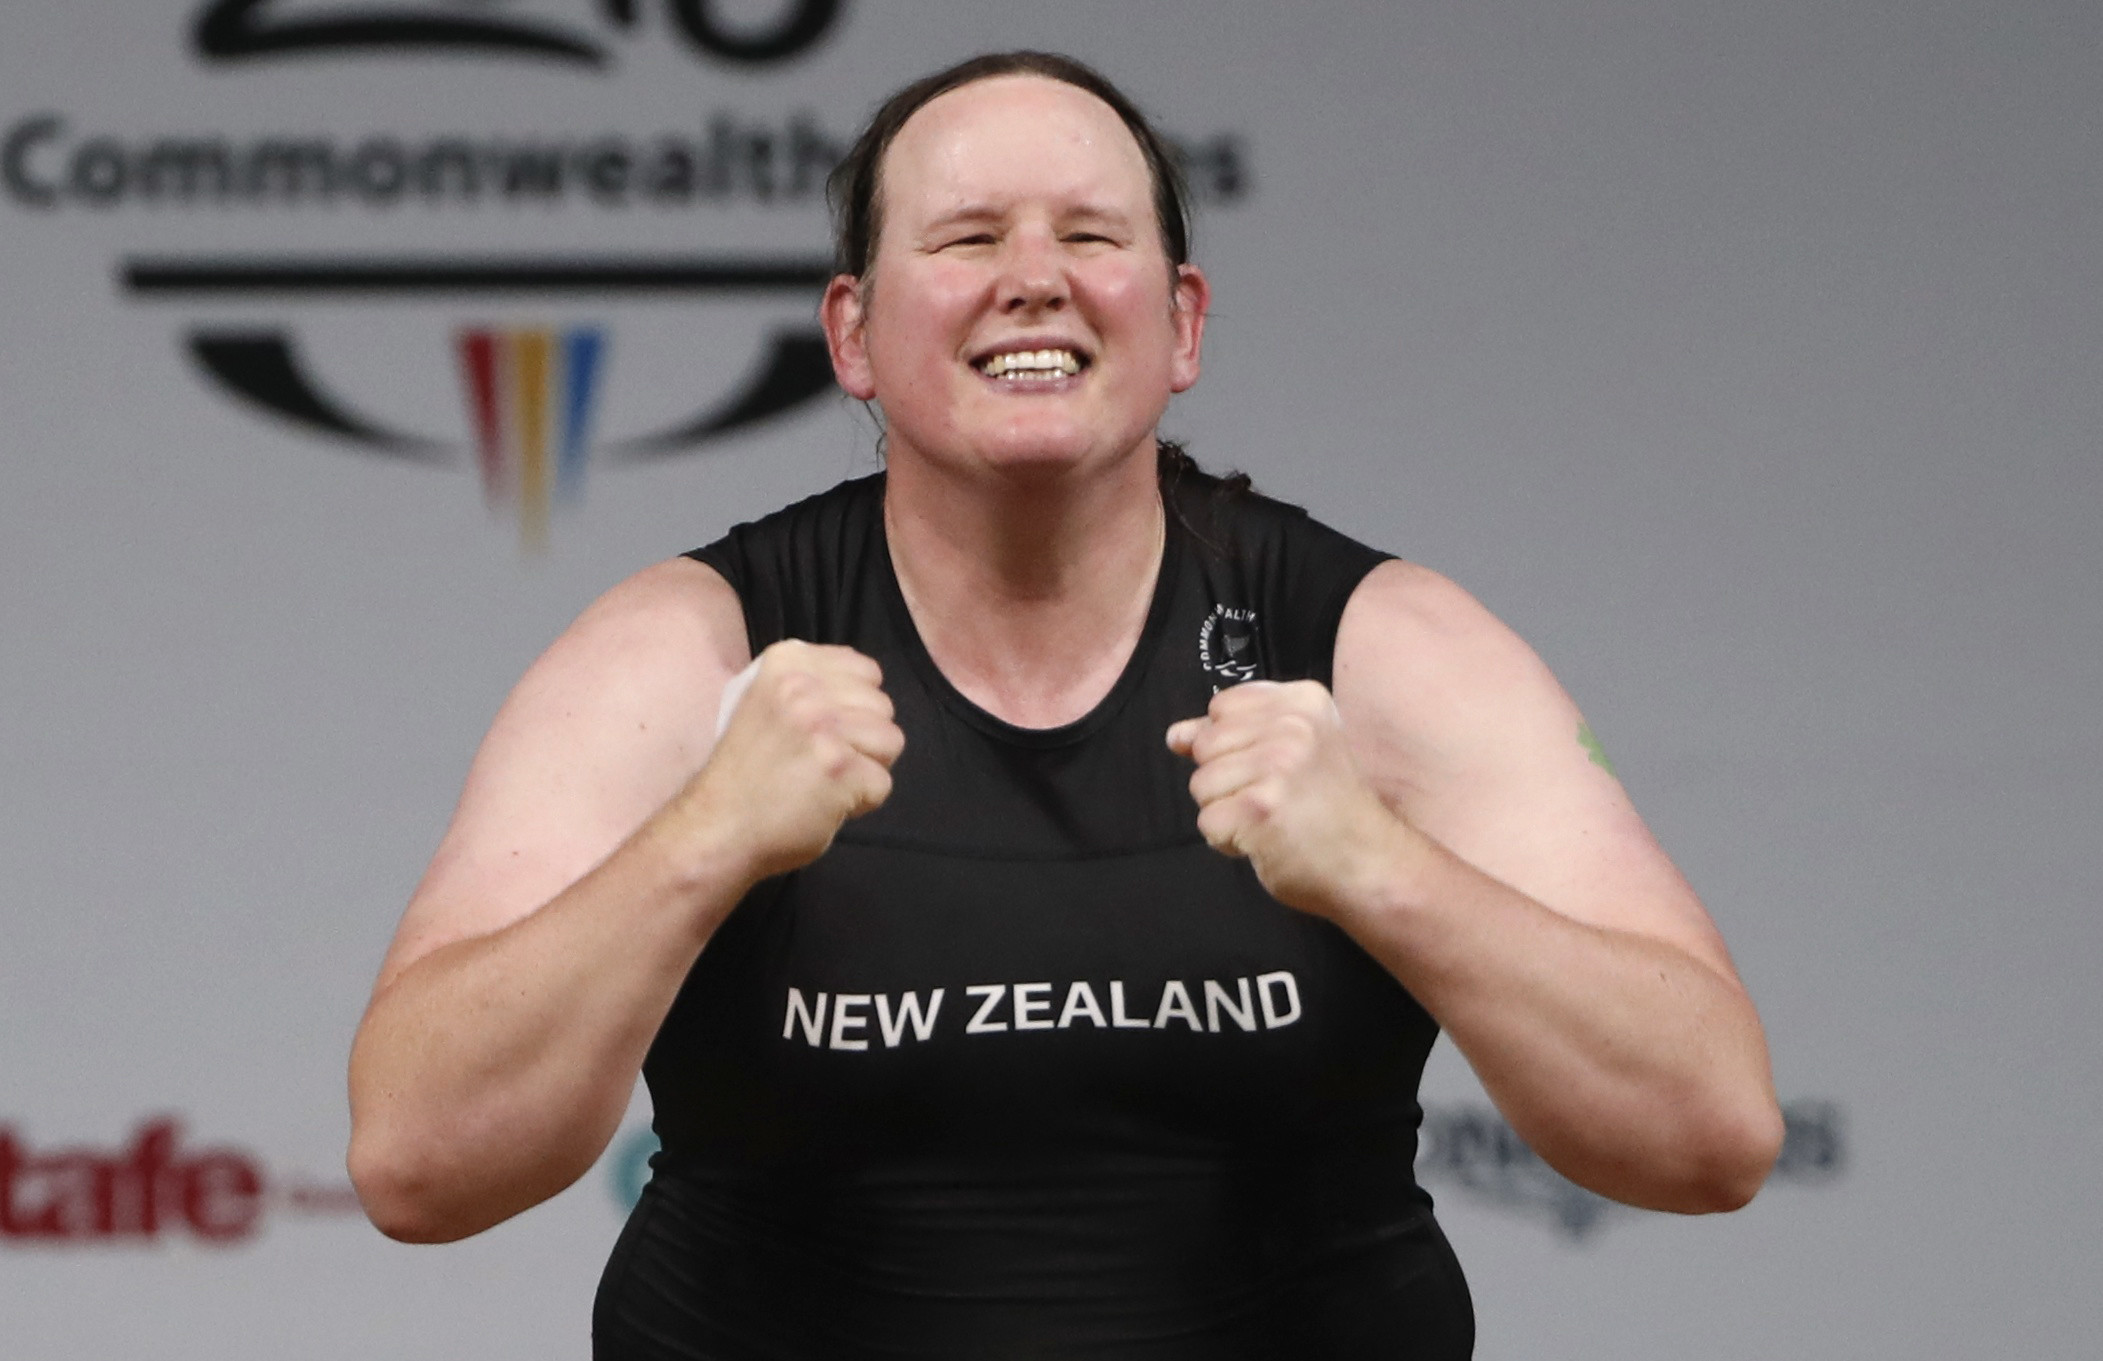 Laurel Hubbard is shown celebrating in the weightlifting category of the Gold Coast 2018 Commonwealth Games